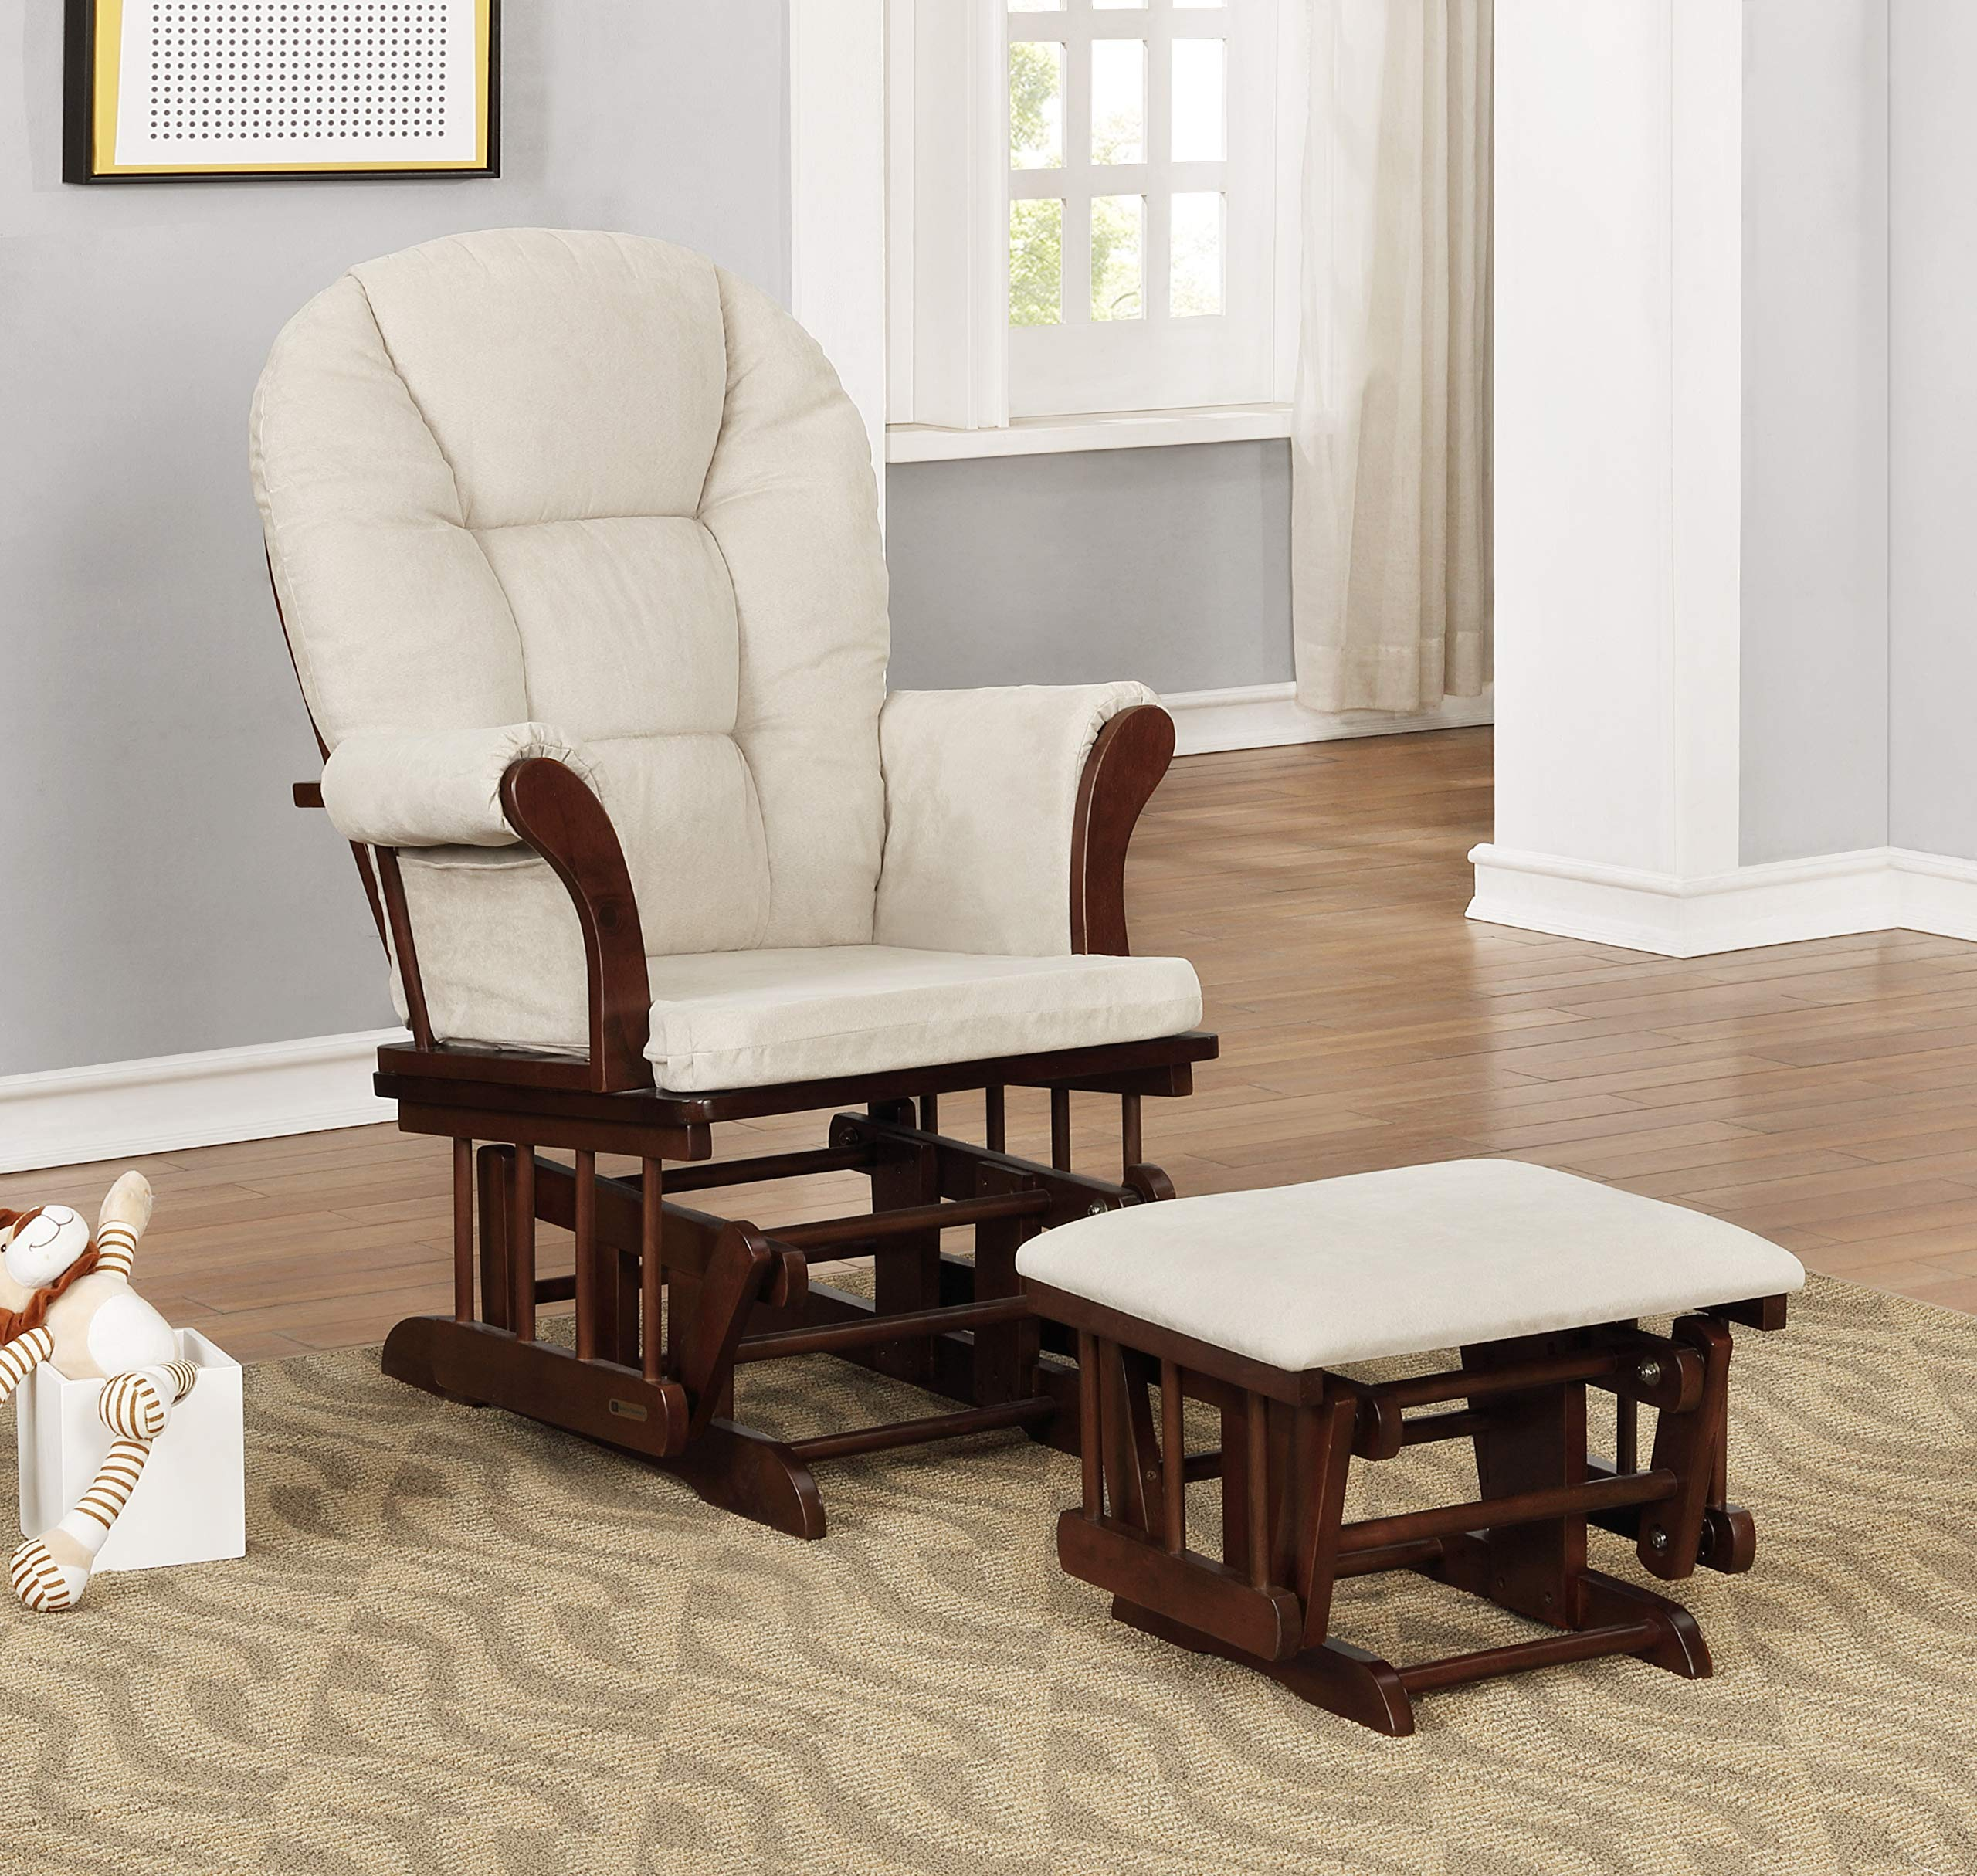 Lennox Furniture Charlotte Glider Chair and Ottoman Combo, Espresso with Beige by Lennox Furniture